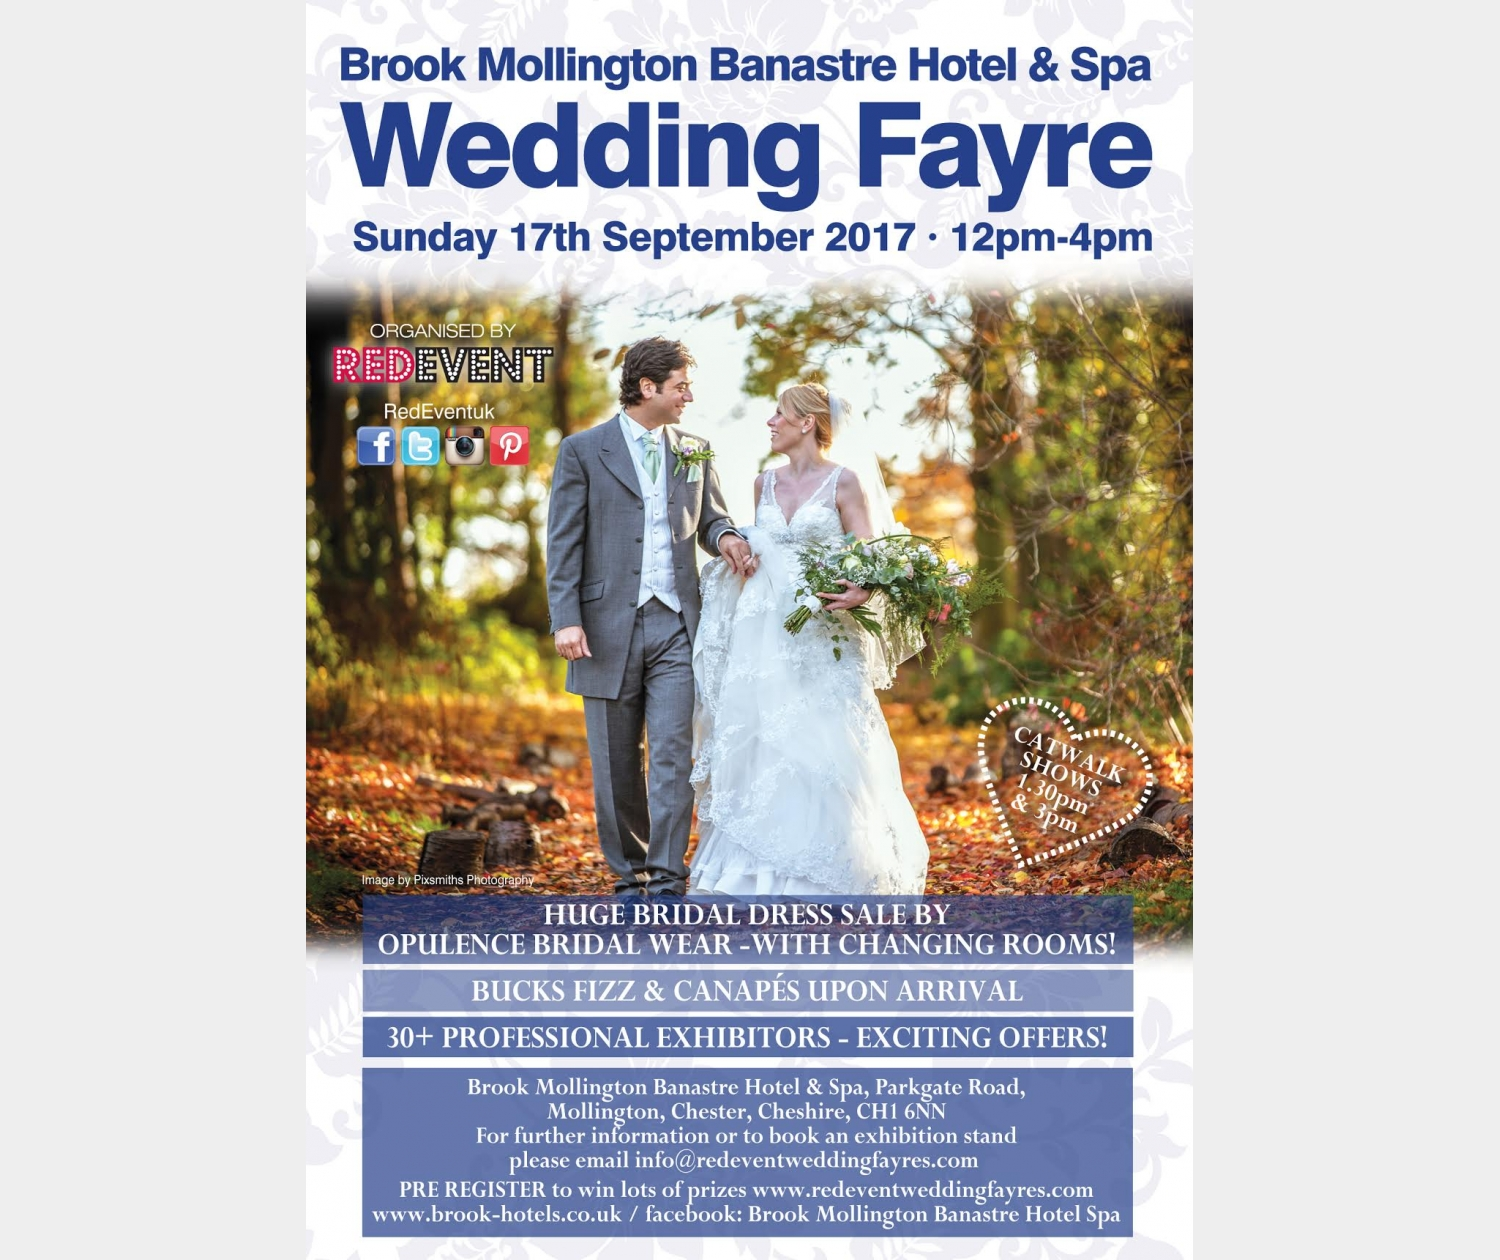 Wedding Fayre at Brook Mollington Banastre Hotel